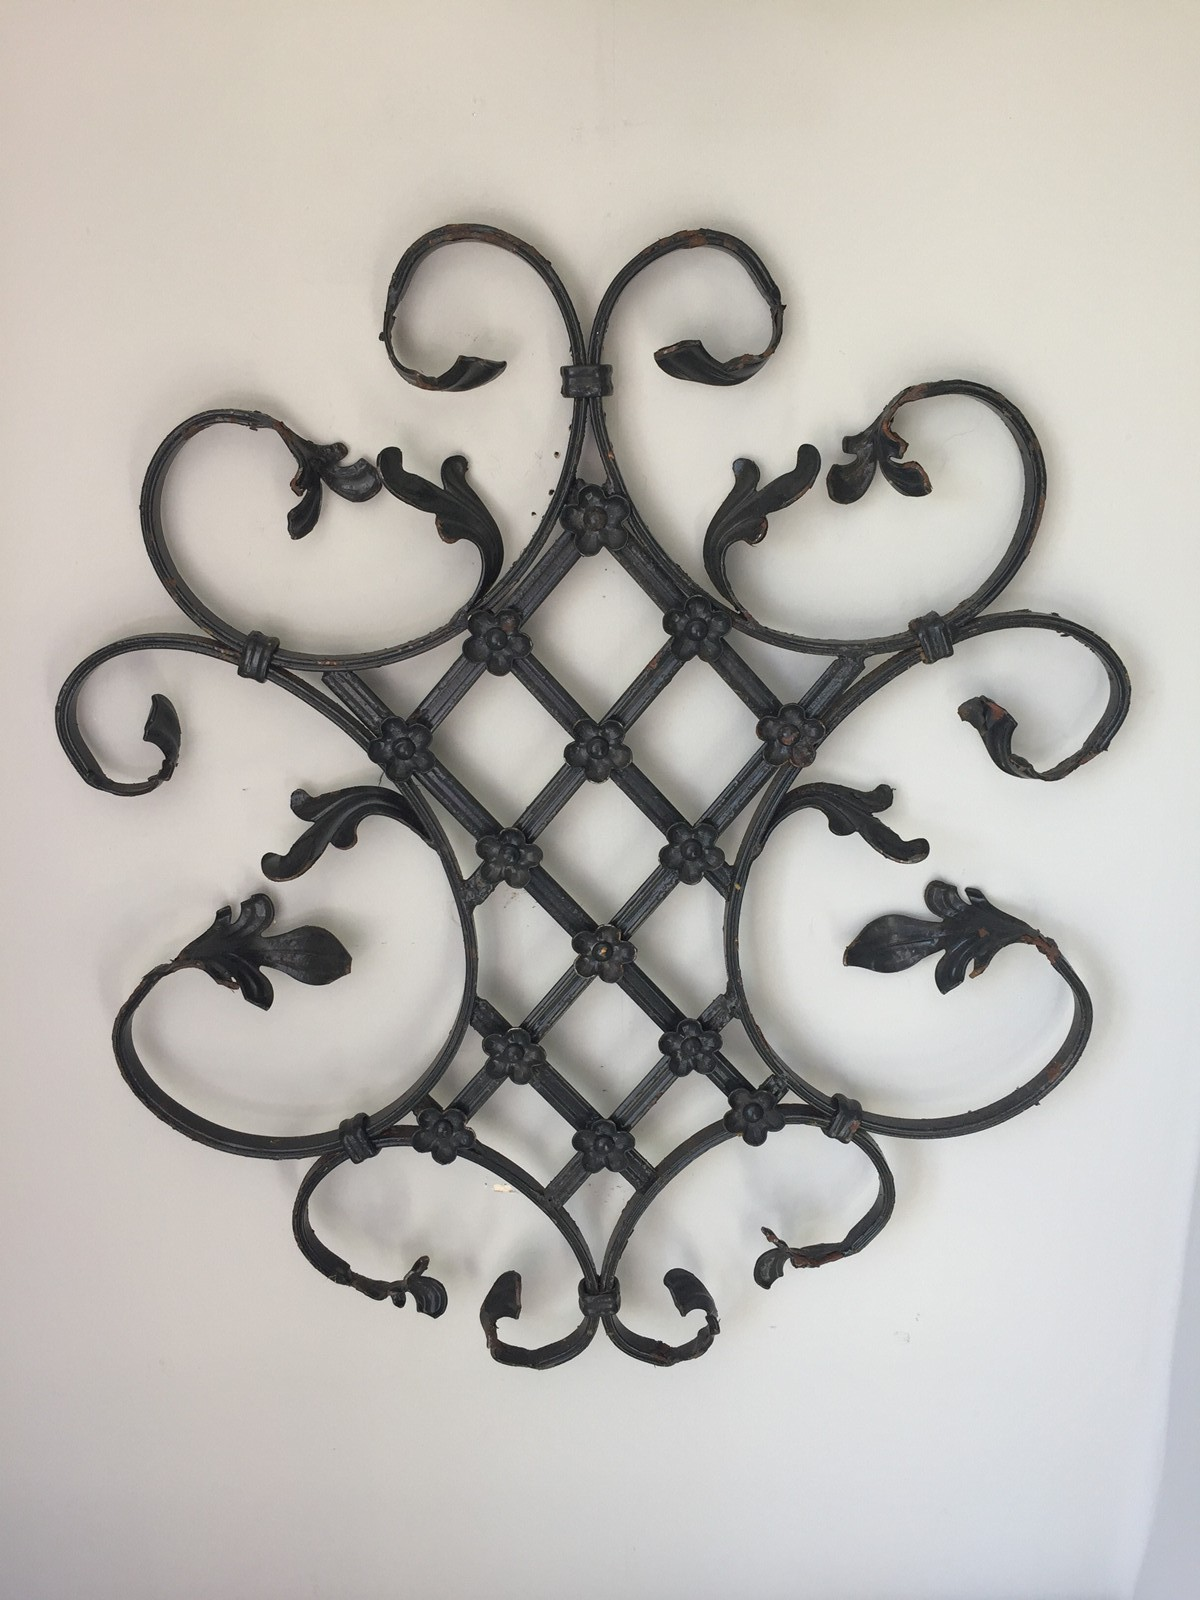 Zoom Wrought Iron Panel With Lattice And Flower Detail Loot Decorative 5F0D0D9C 8B7F